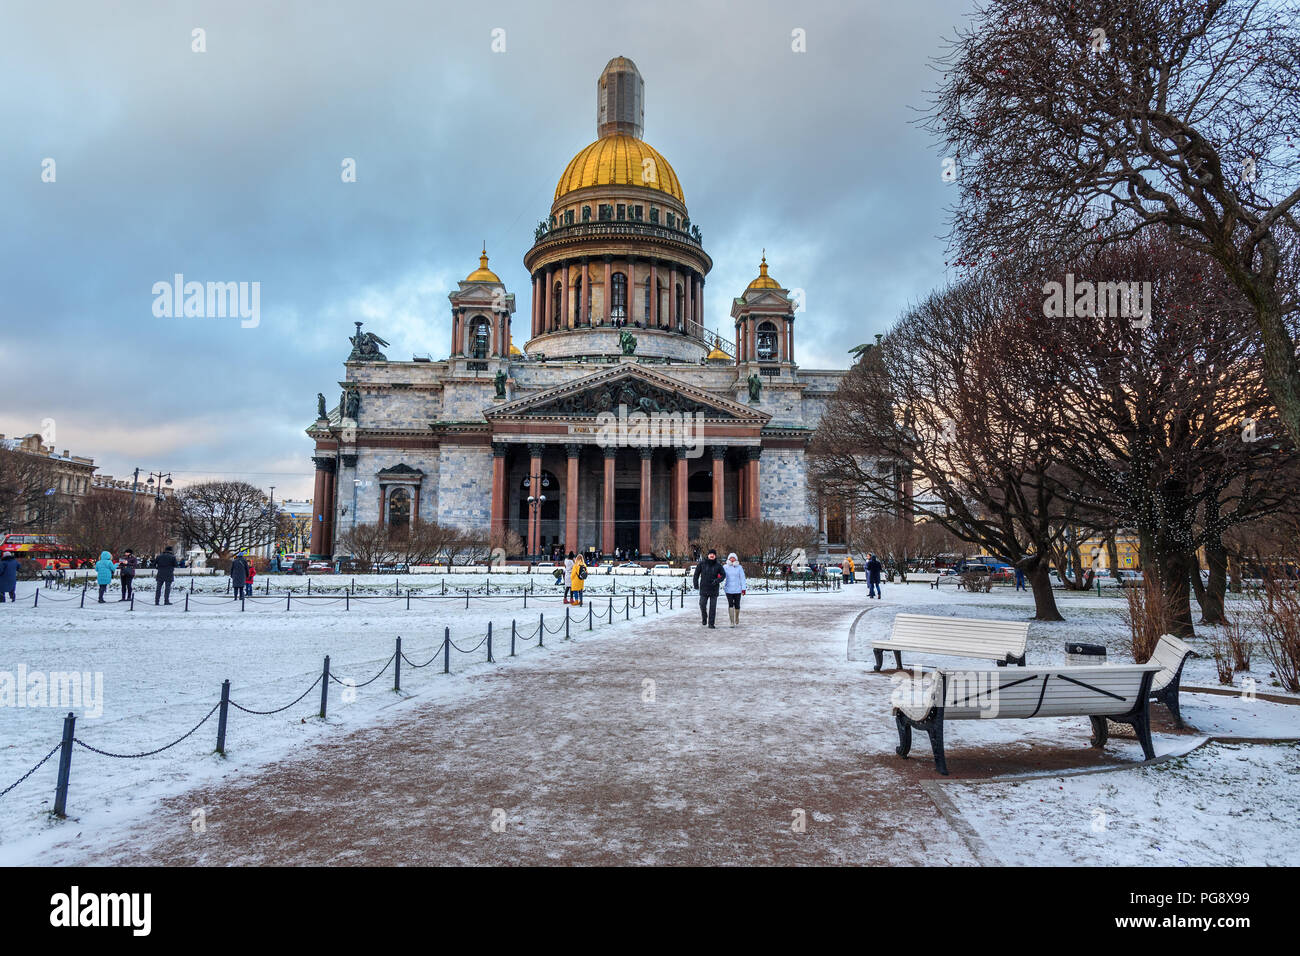 Saint Petersburg, Russia - January 7, 2018: Saint Isaac's Cathedral in winter Stock Photo